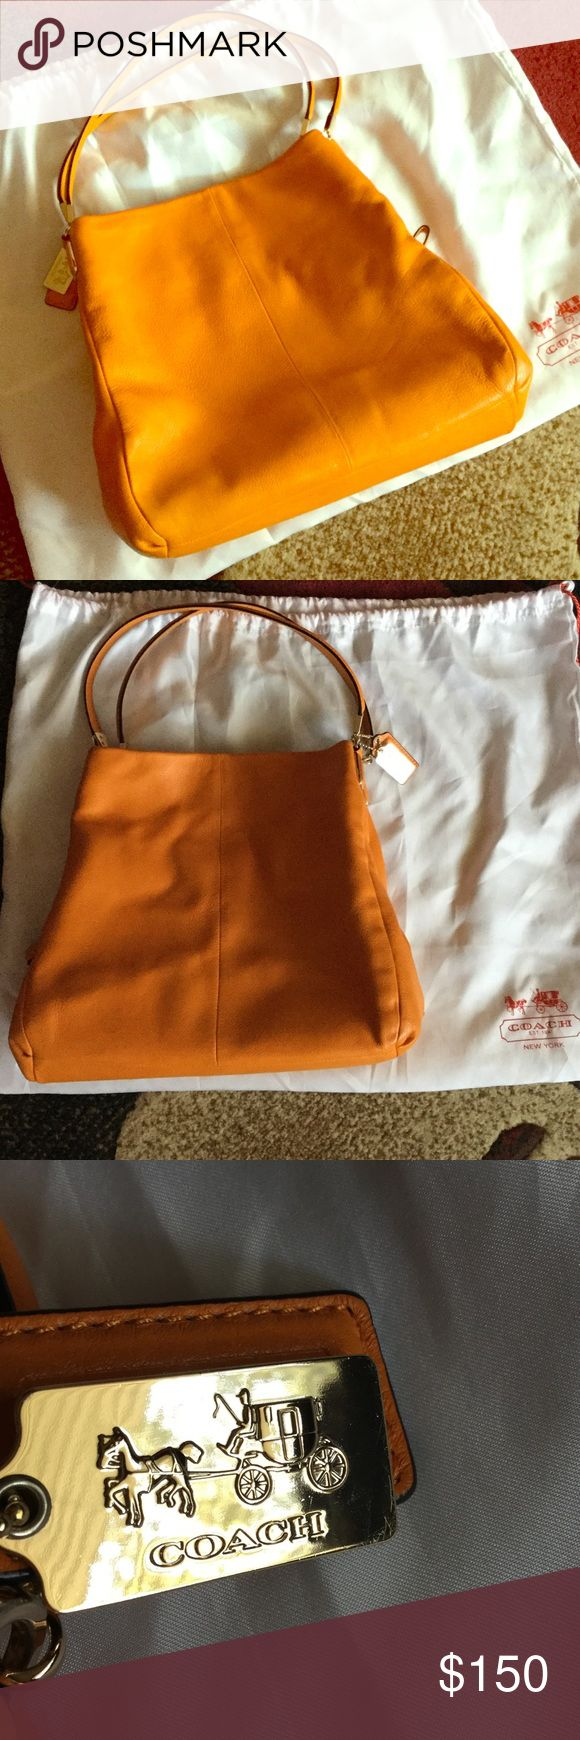 COACH hobo bag Great Fall color! Orange leather with dust bag. Used one season interior zip pocket and phone pouch additional space rom center zipper. Great bag for a busy, stylish Mom-on-the-go! Lots of compartments. Please comment with any questions. Coach Bags Hobos